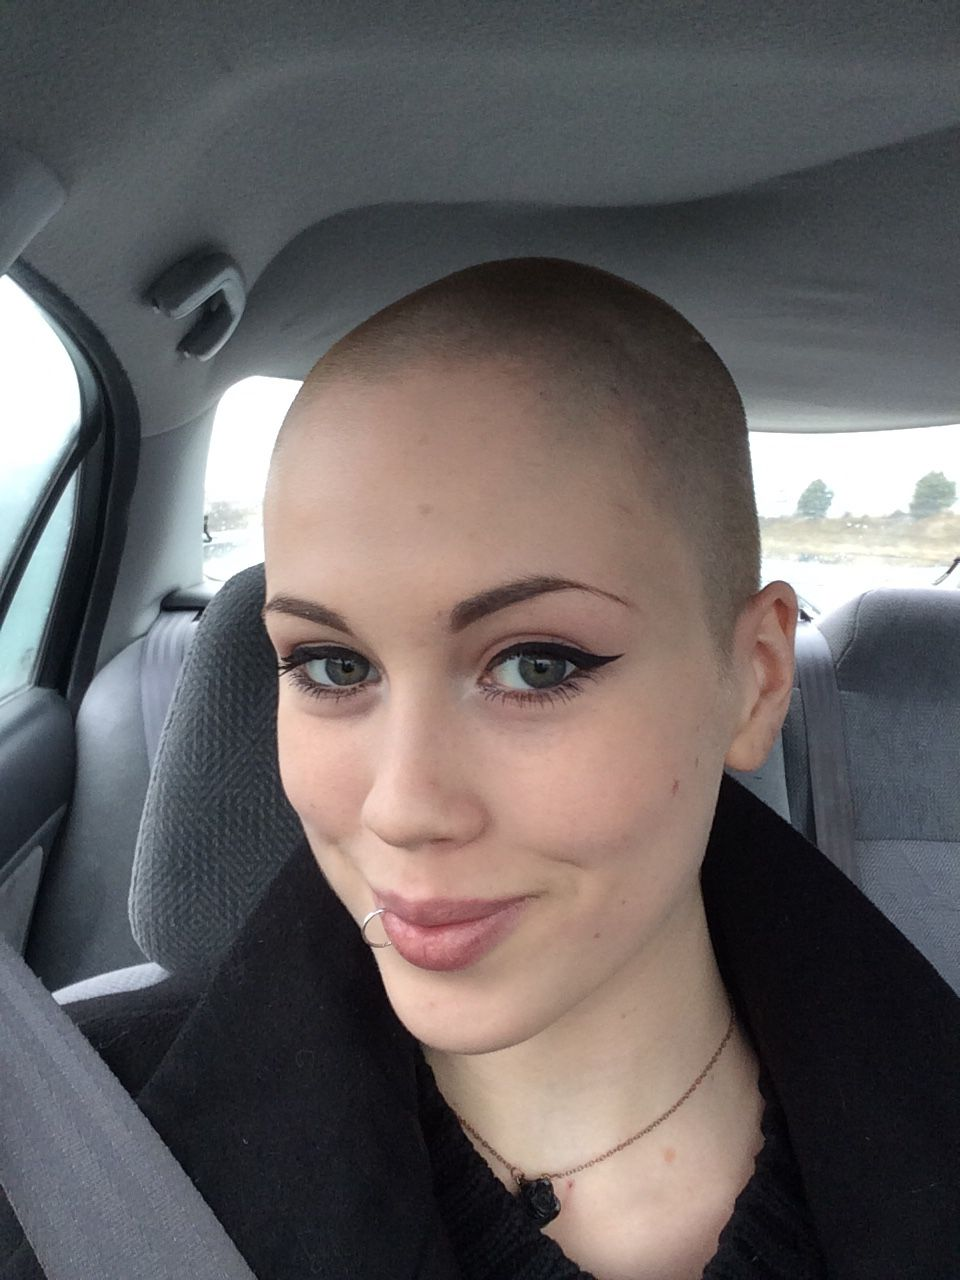 Cool desings shaved in heads perfect